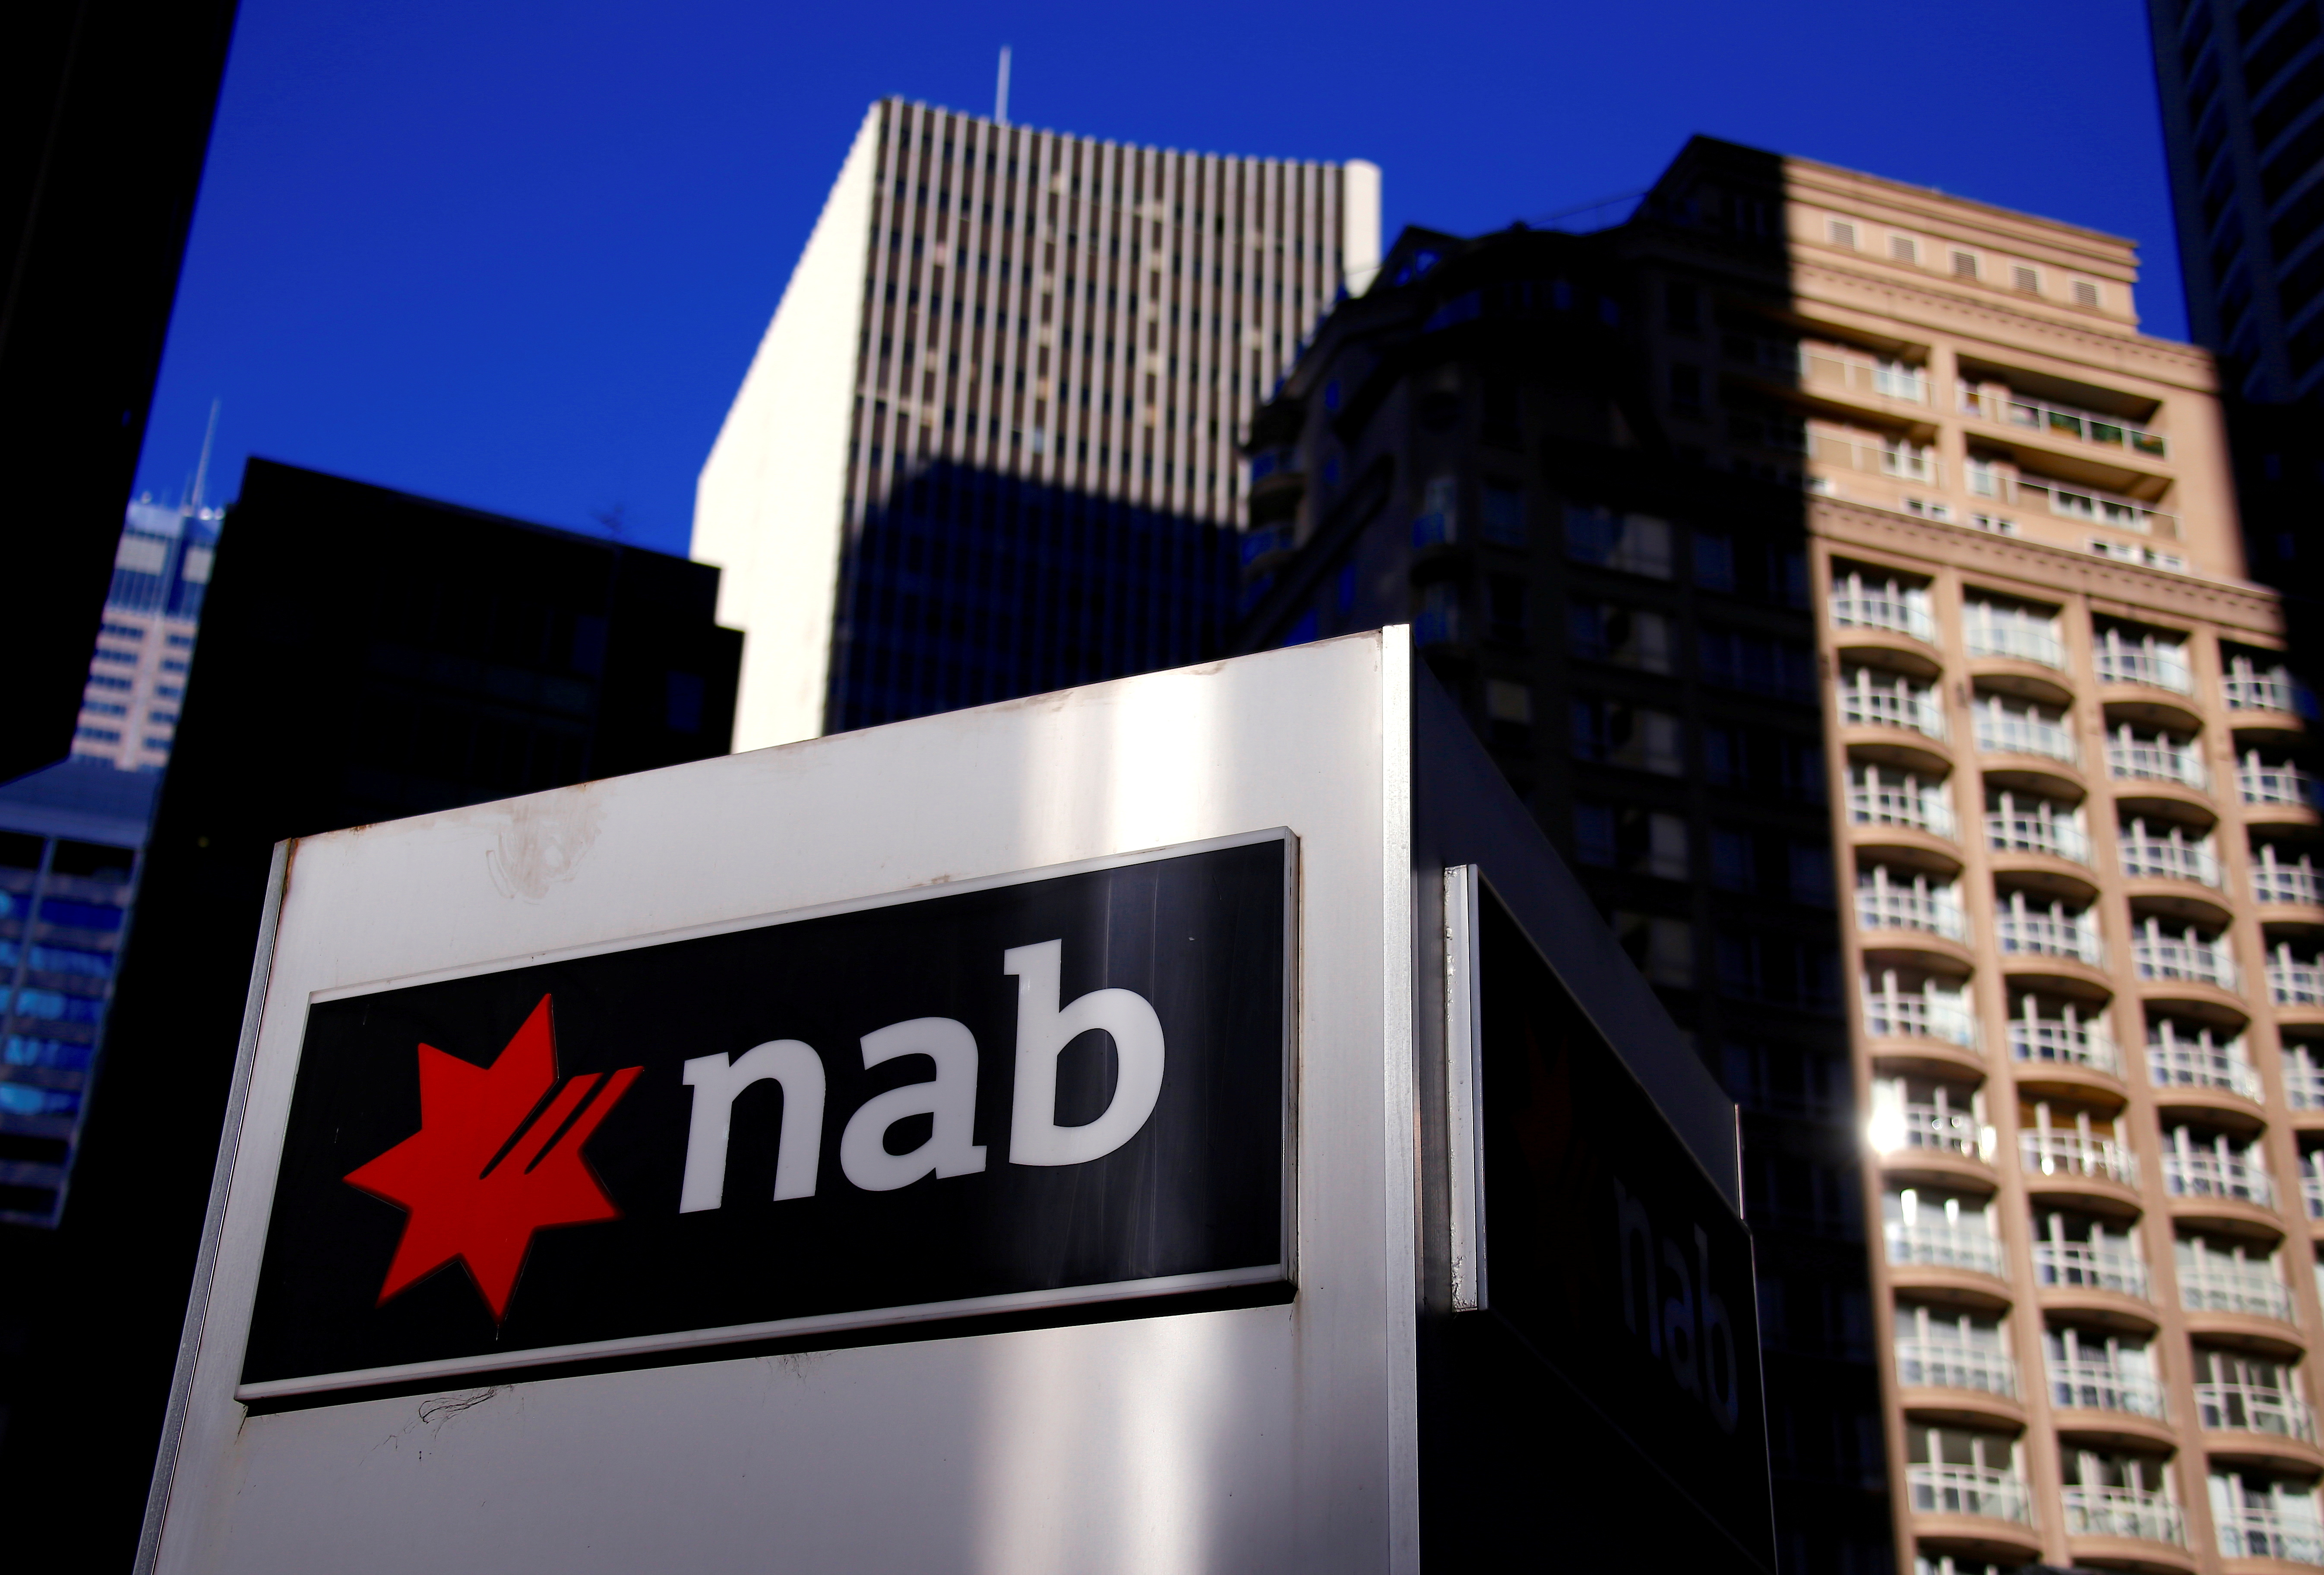 The logo of the National Australia Bank is displayed in central Sydney, Australia, August 4, 2017. REUTERS/David Gray